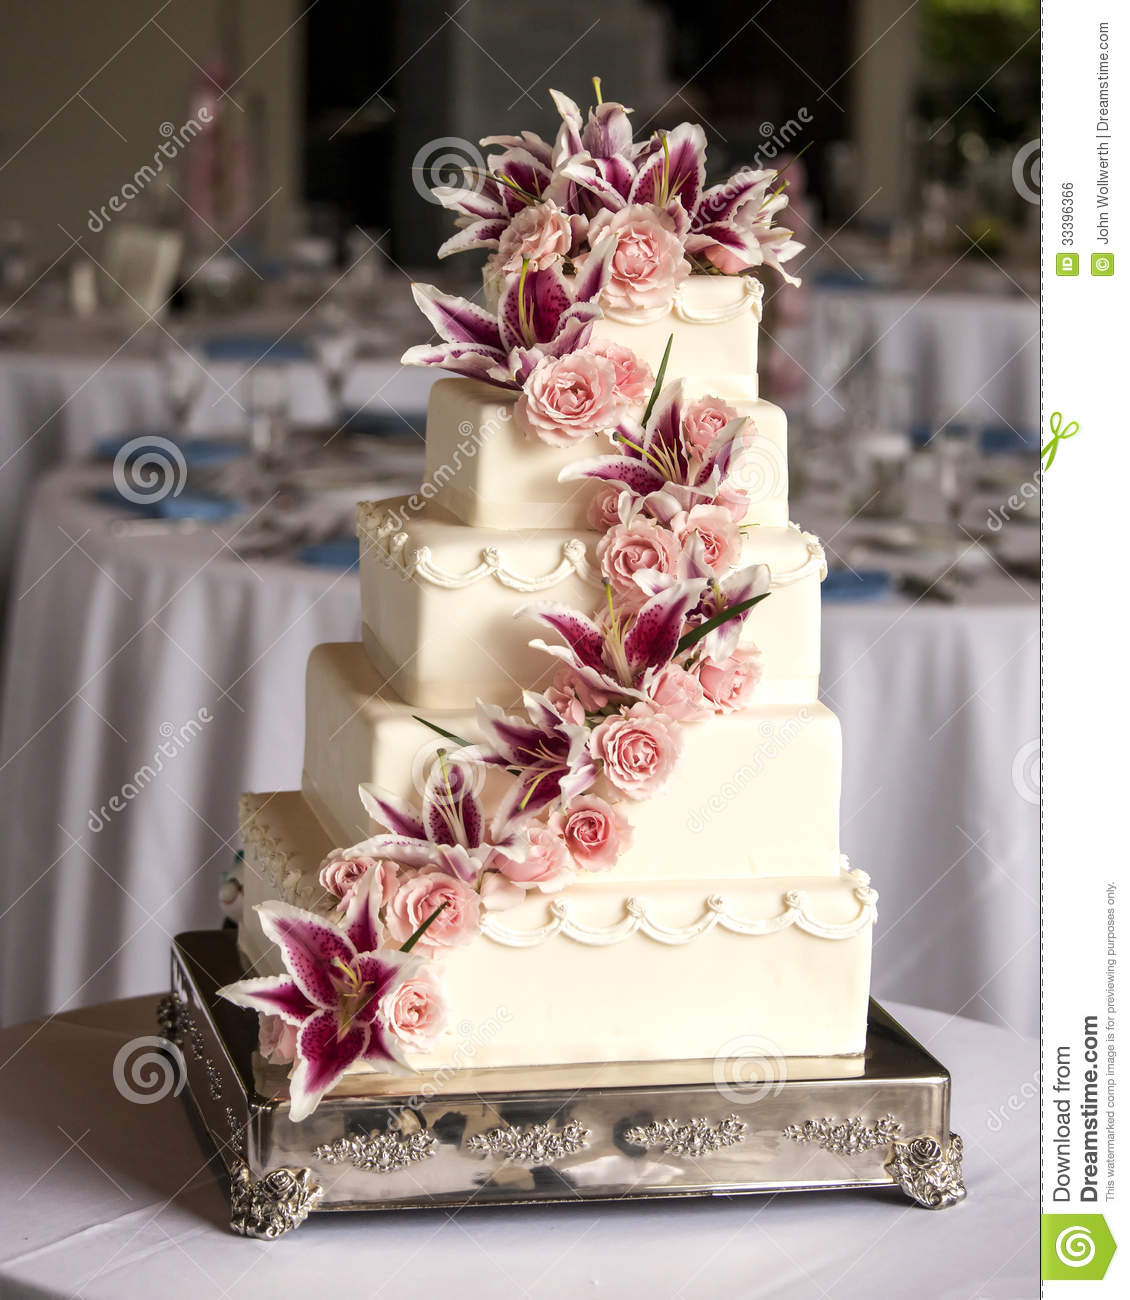 Elaborate Five Tiered Wedding Cake Stock Photo - Image of bridal ...